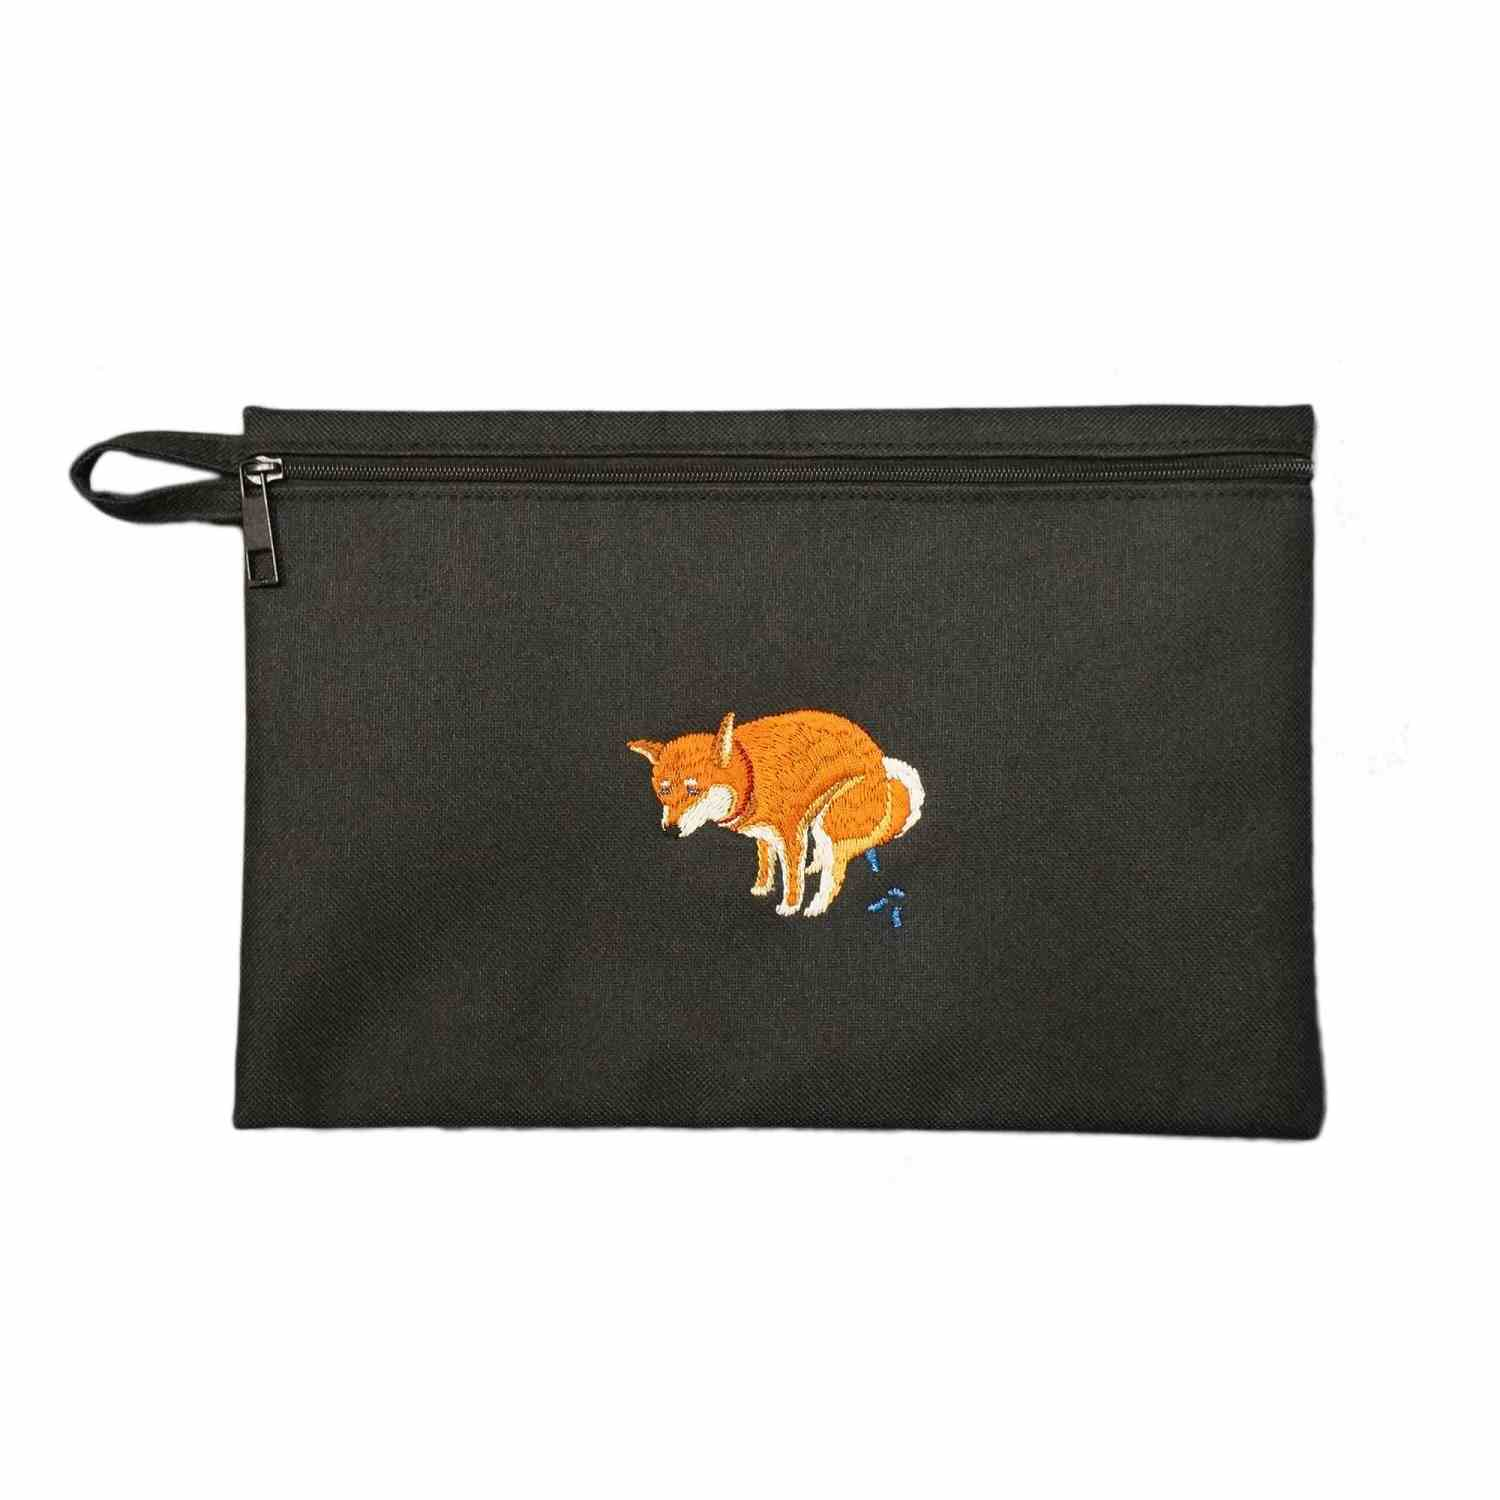 SHIBA-INU POOPING POUCH - 赤柴